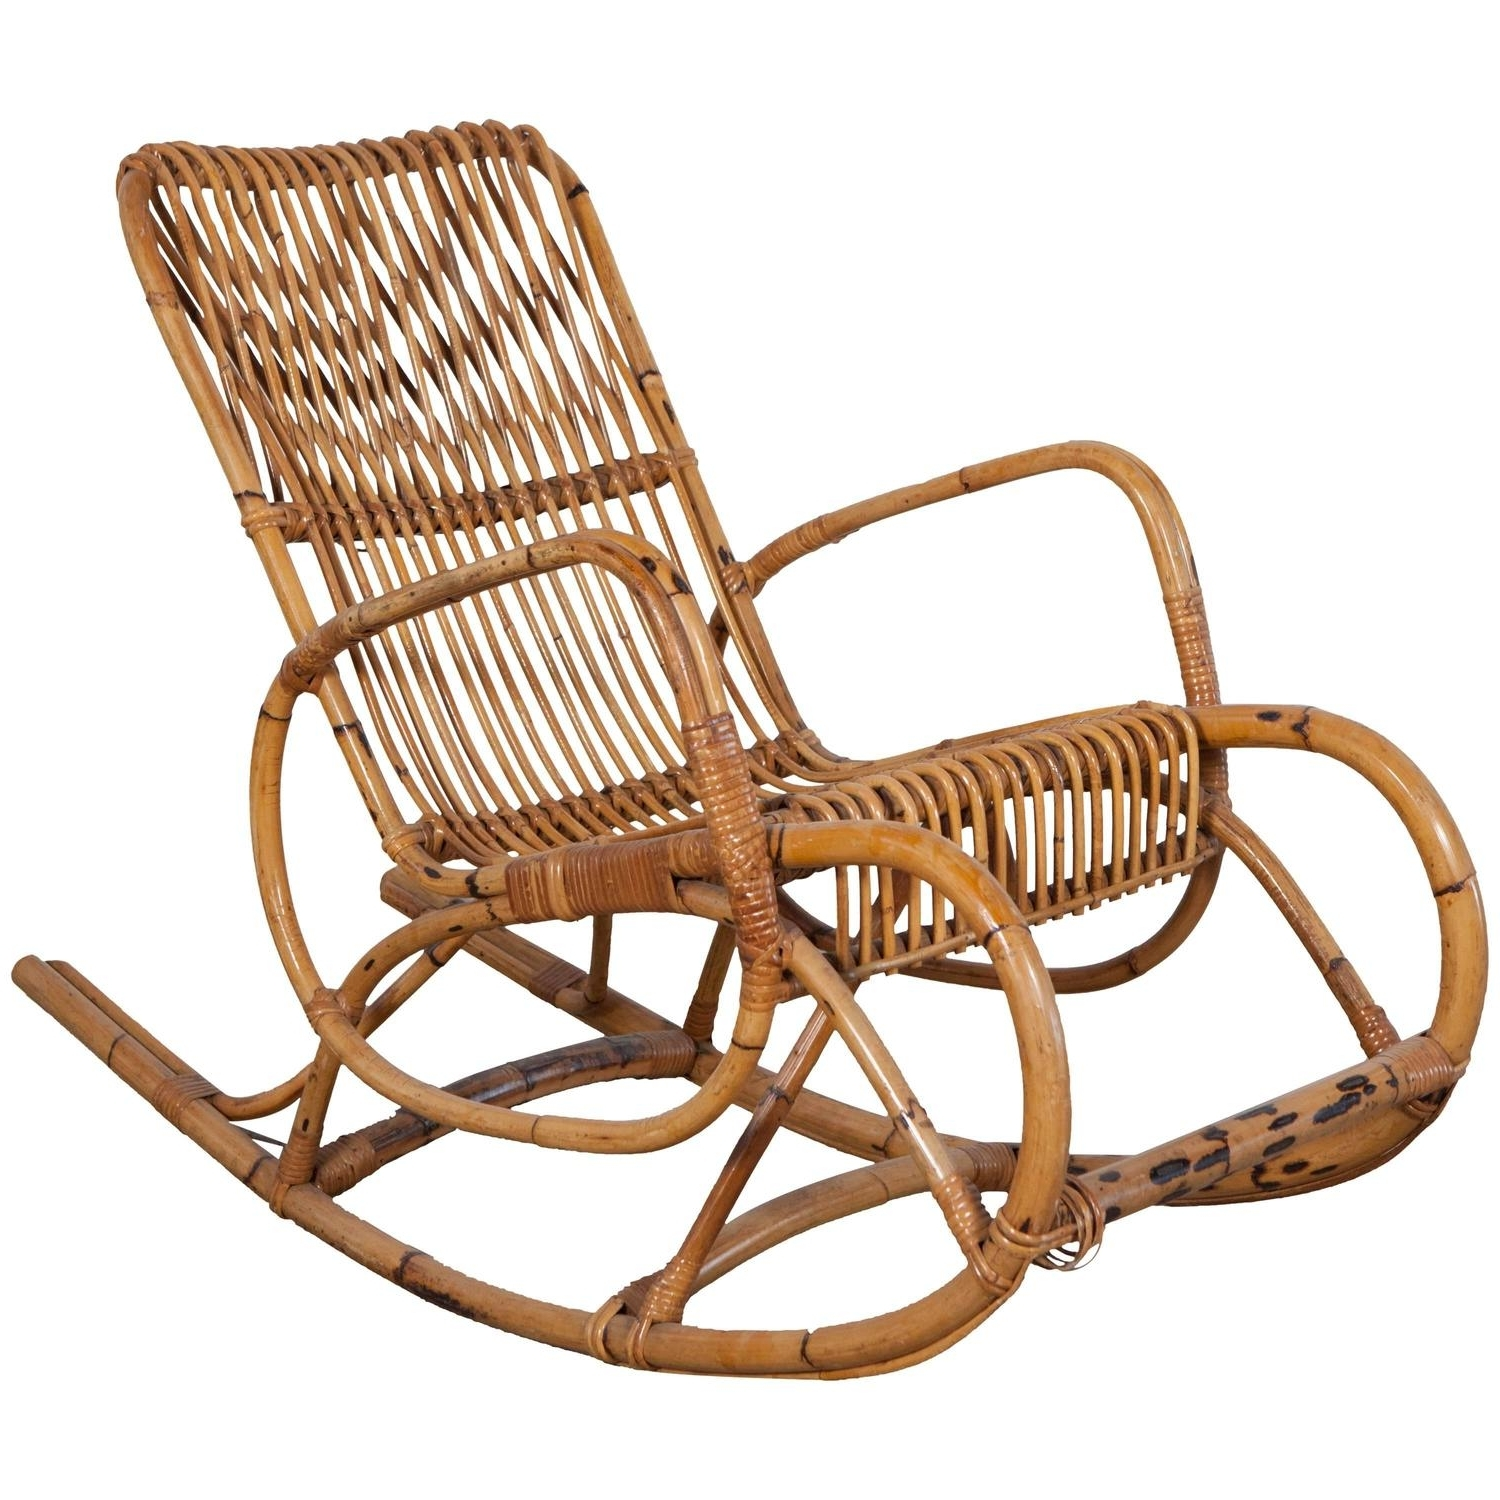 Preferred Antique Rocking Chairs With Regard To Vintage Italian Bamboo Rocking Chair With Square Arms At 1stdibs (View 3 of 15)